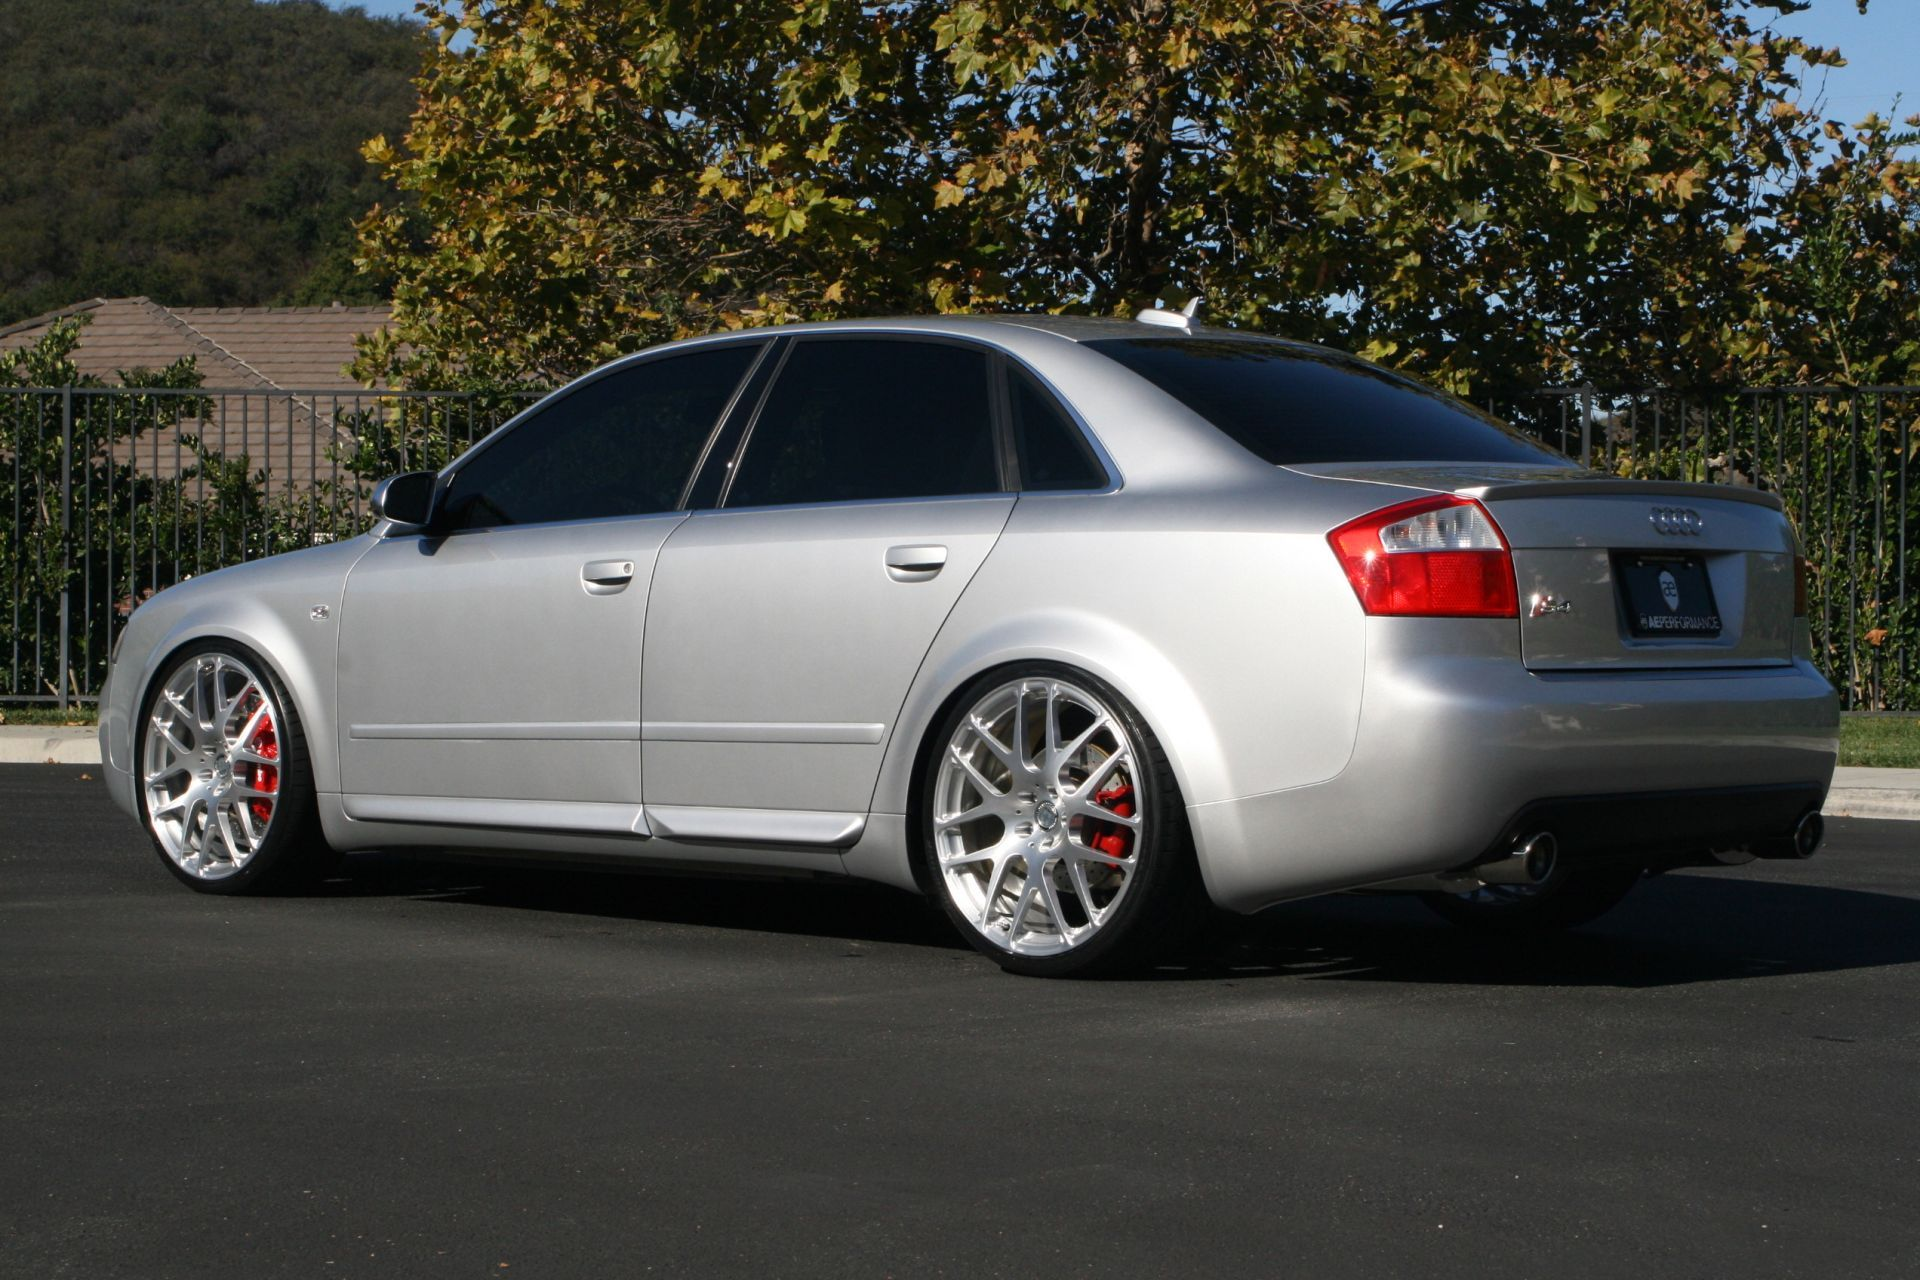 audi a4 b6 mods google search audia pinterest audi a4 a4 and cars. Black Bedroom Furniture Sets. Home Design Ideas